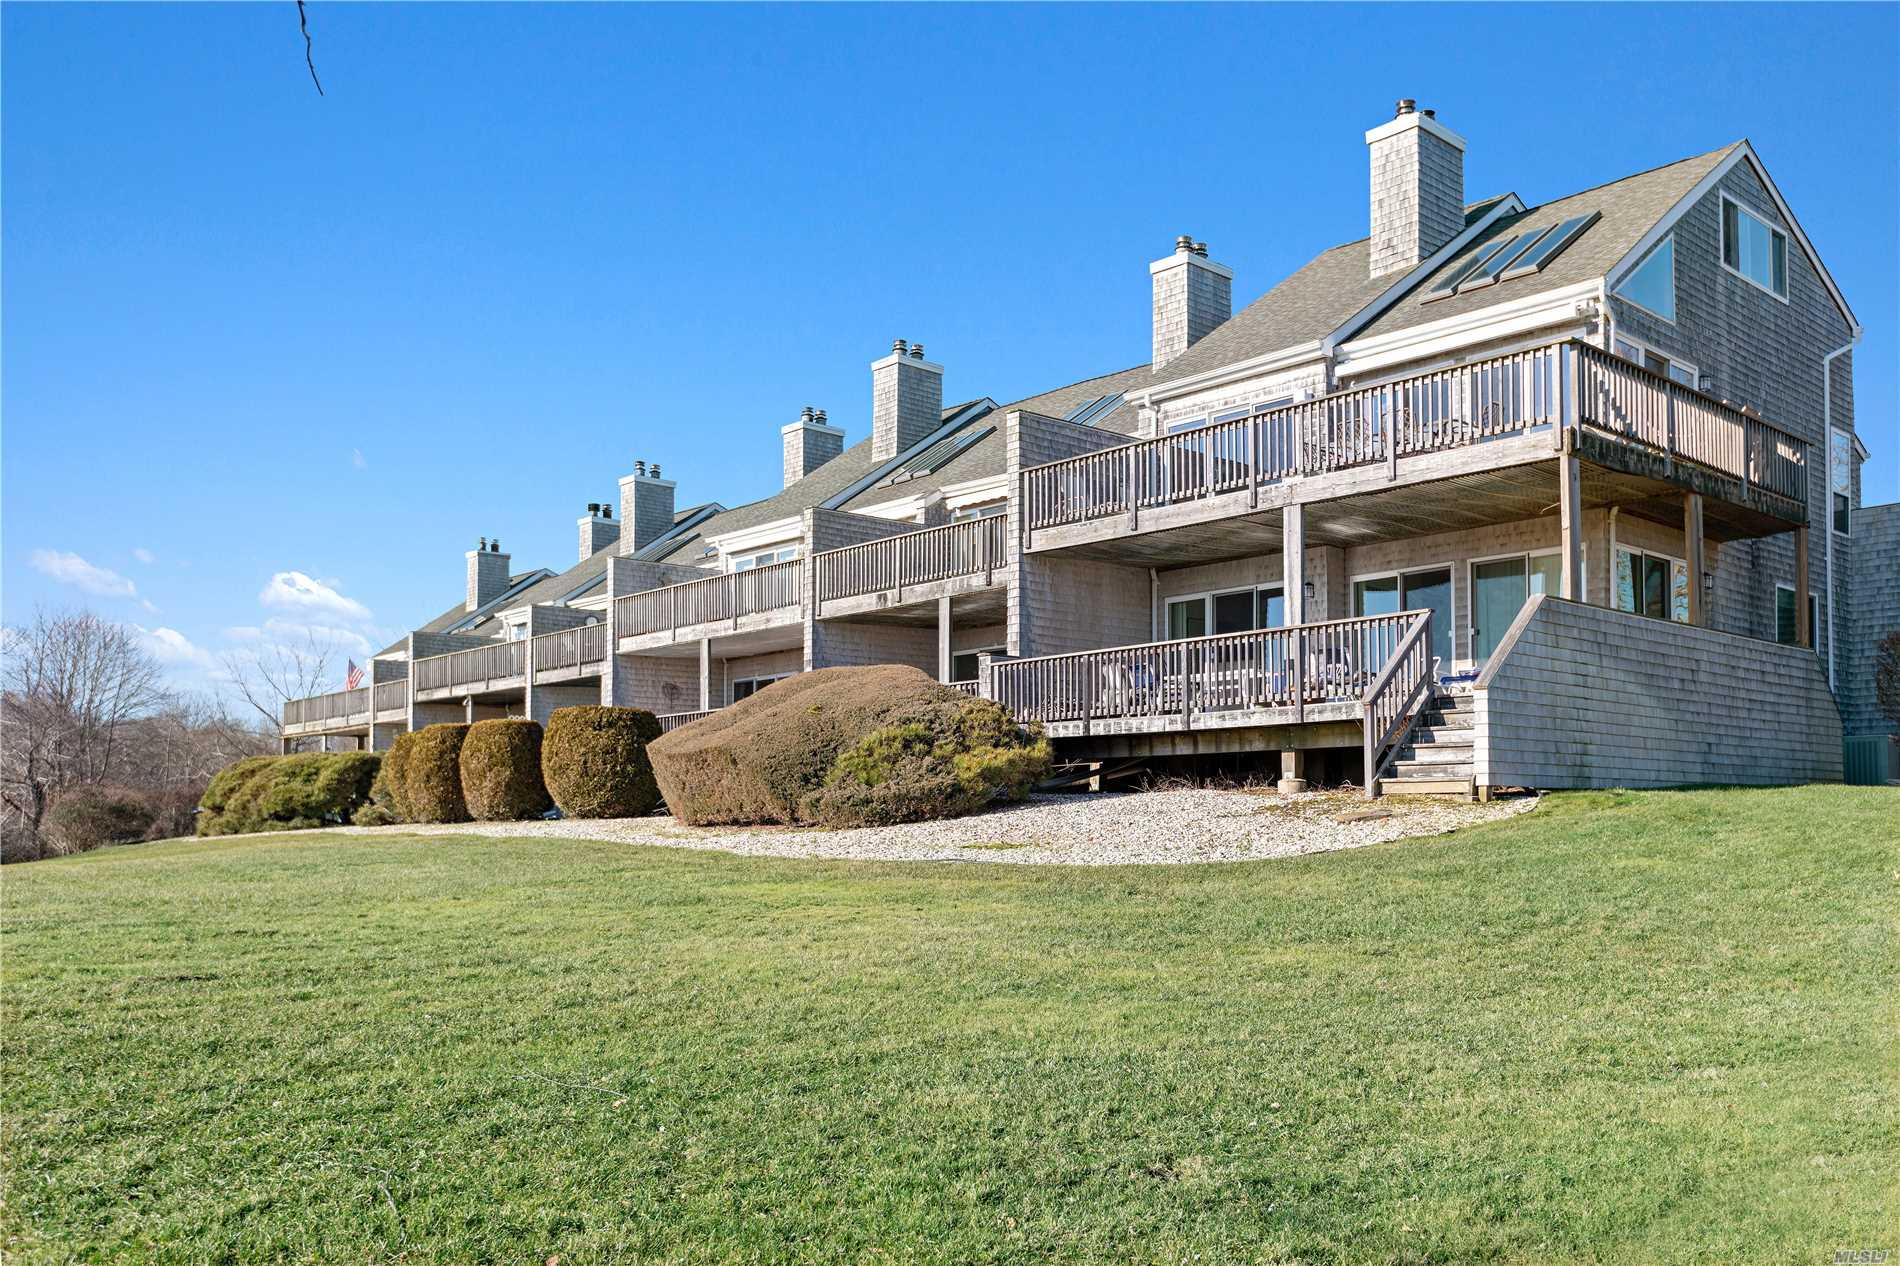 Gated Waterfront Condo Community! Enjoy Breathtaking Views Of Harts Cove And Moriches Bay From Your Private Deck. Home Features New Flooring, Upgraded Baths, 3 Bedrooms, 3 Full Baths, Large Living Room W/Fireplace And Vaulted Ceiling, Eik, Dr, And Loft Office. Community Features Pool, Tennis, And Deeded Boat Slip Which Allows You To Boat To The Beach!